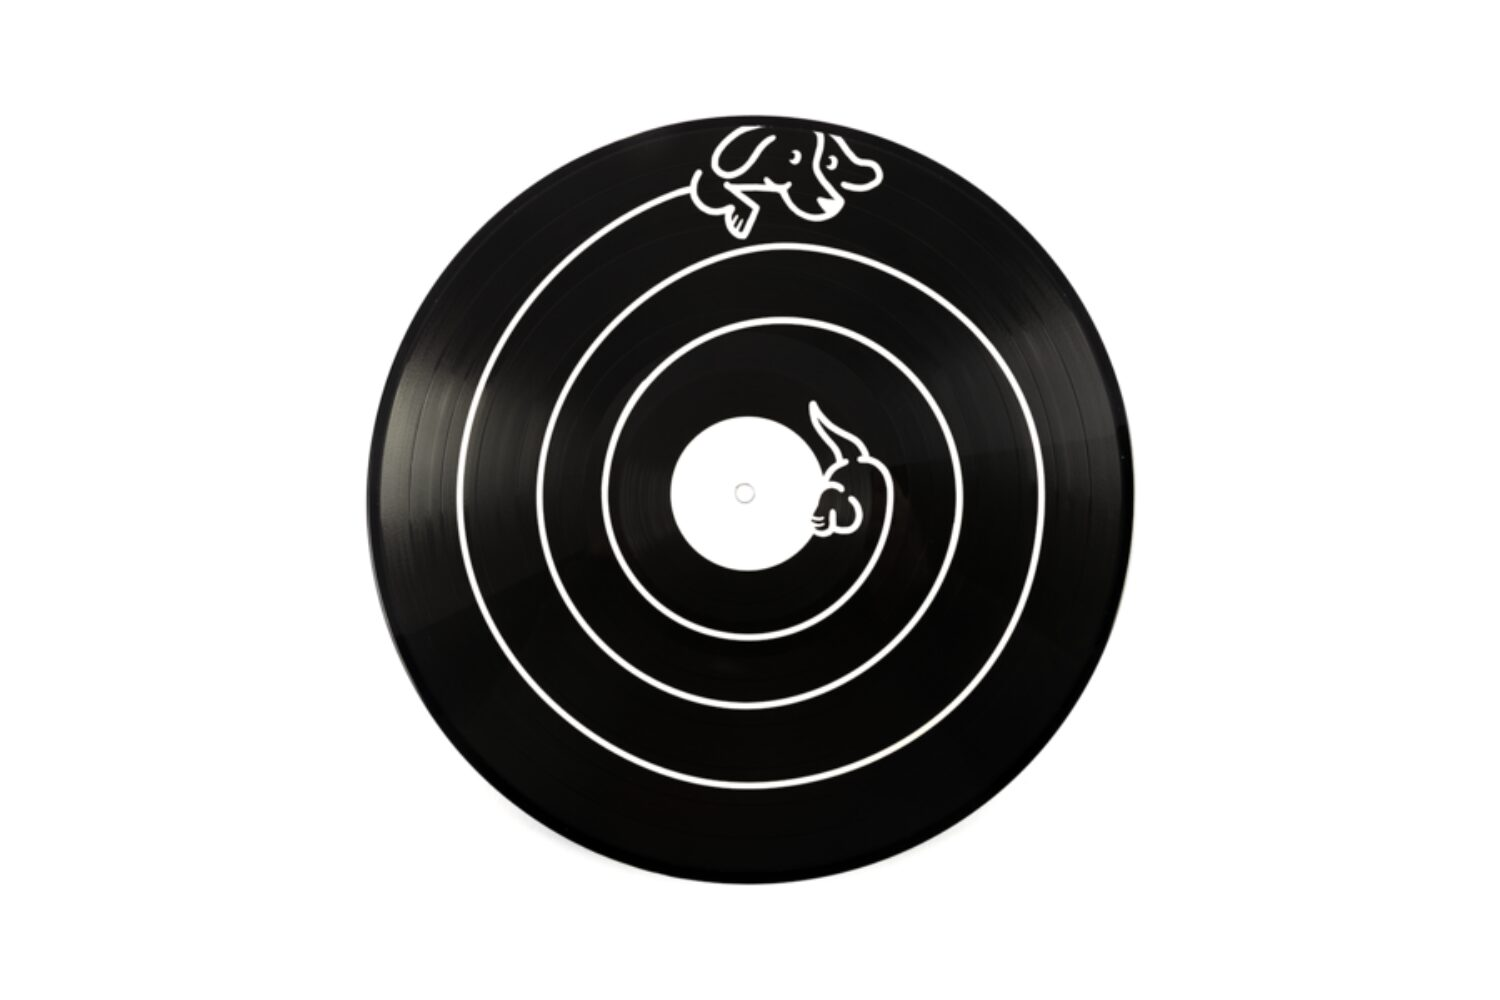 """Big Scary Monsters celebrate 250th release with special 12"""" picture disc"""